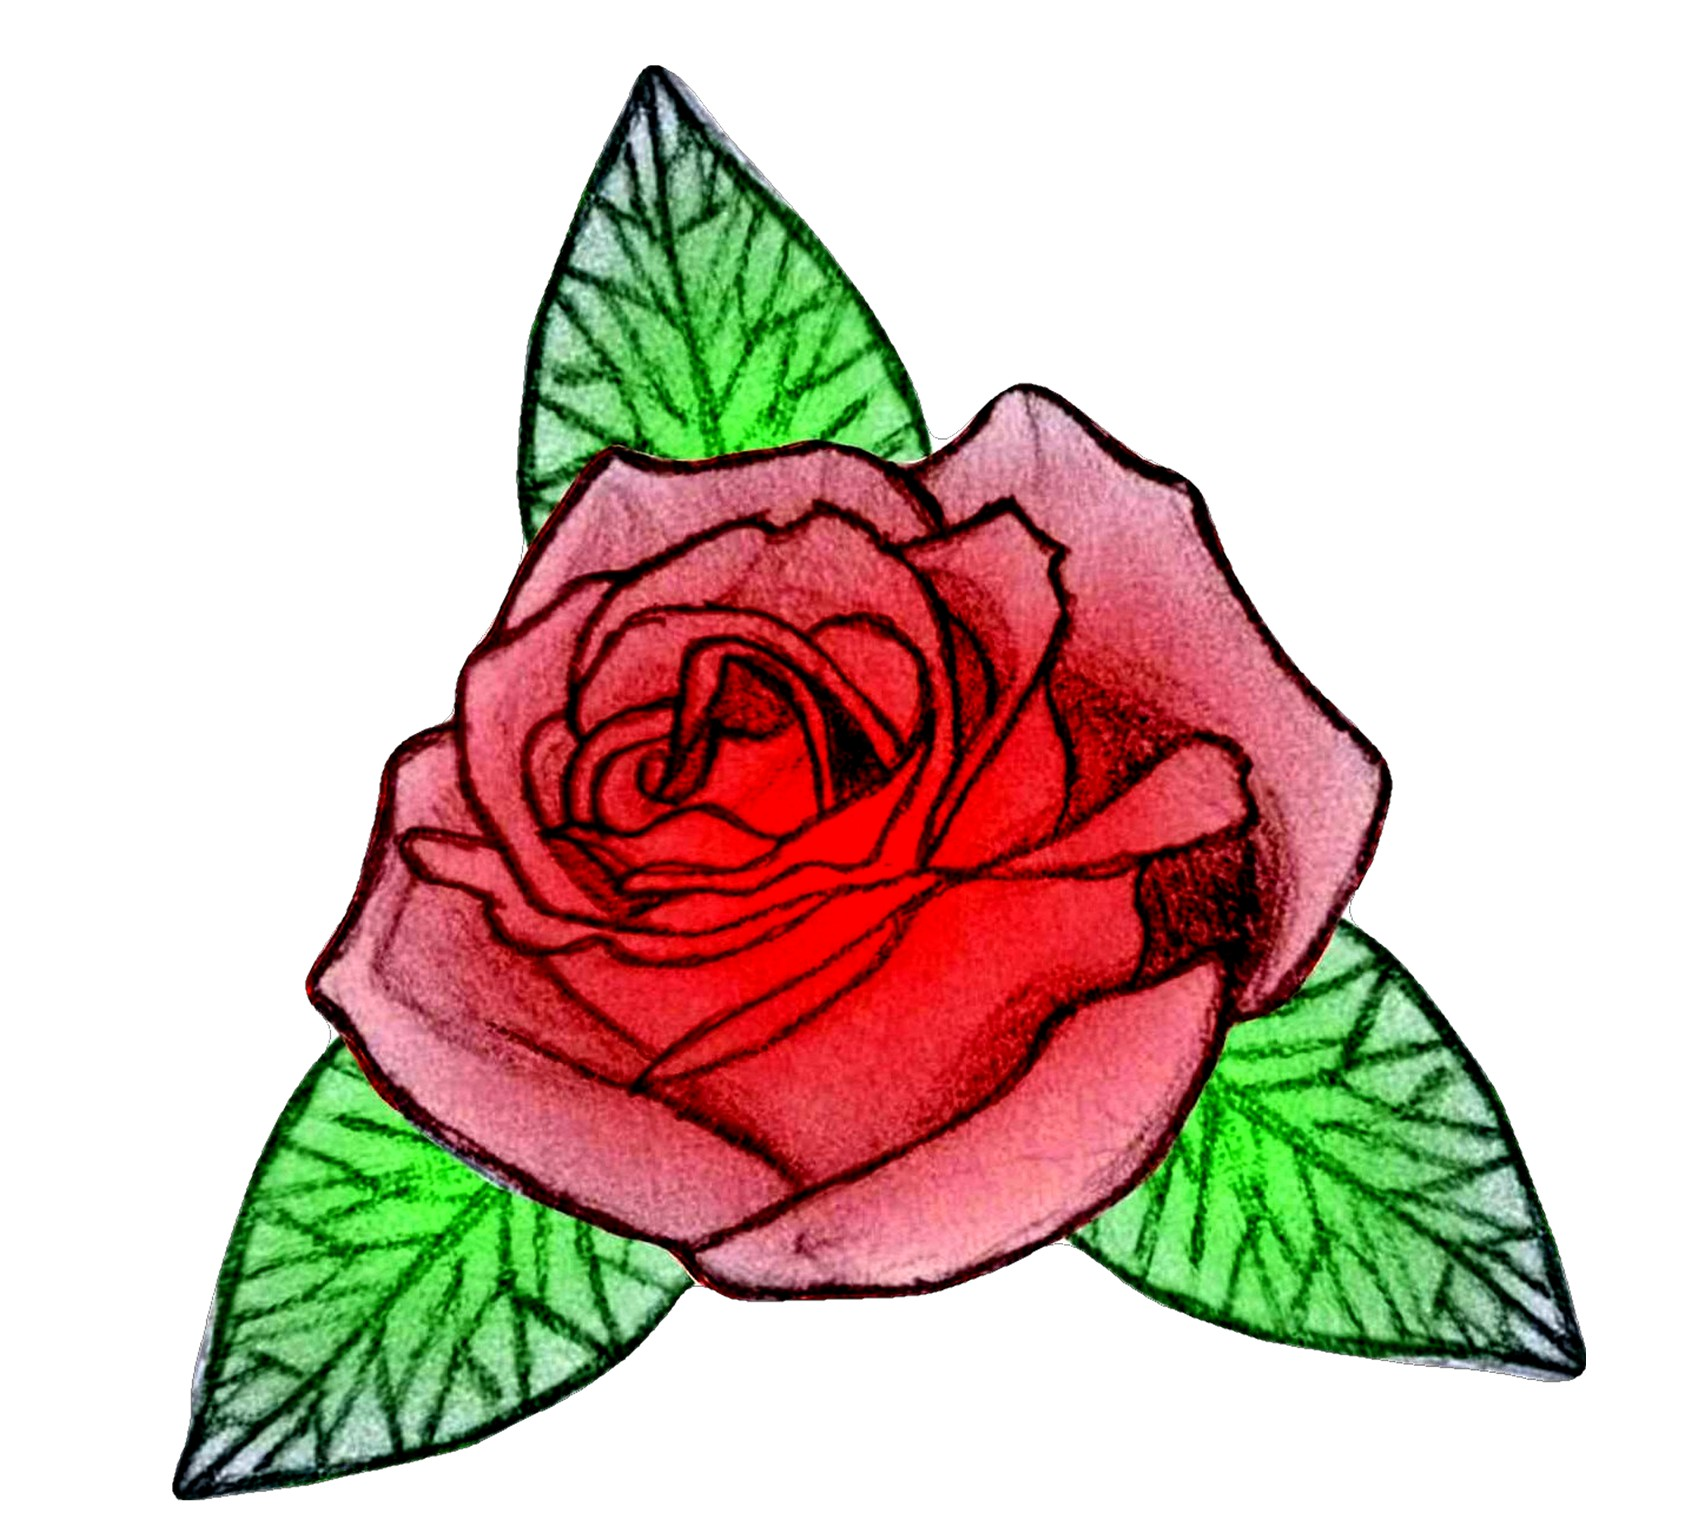 Drawn red rose hand drawn Rose Fluffytheartist by by Fluffytheartist